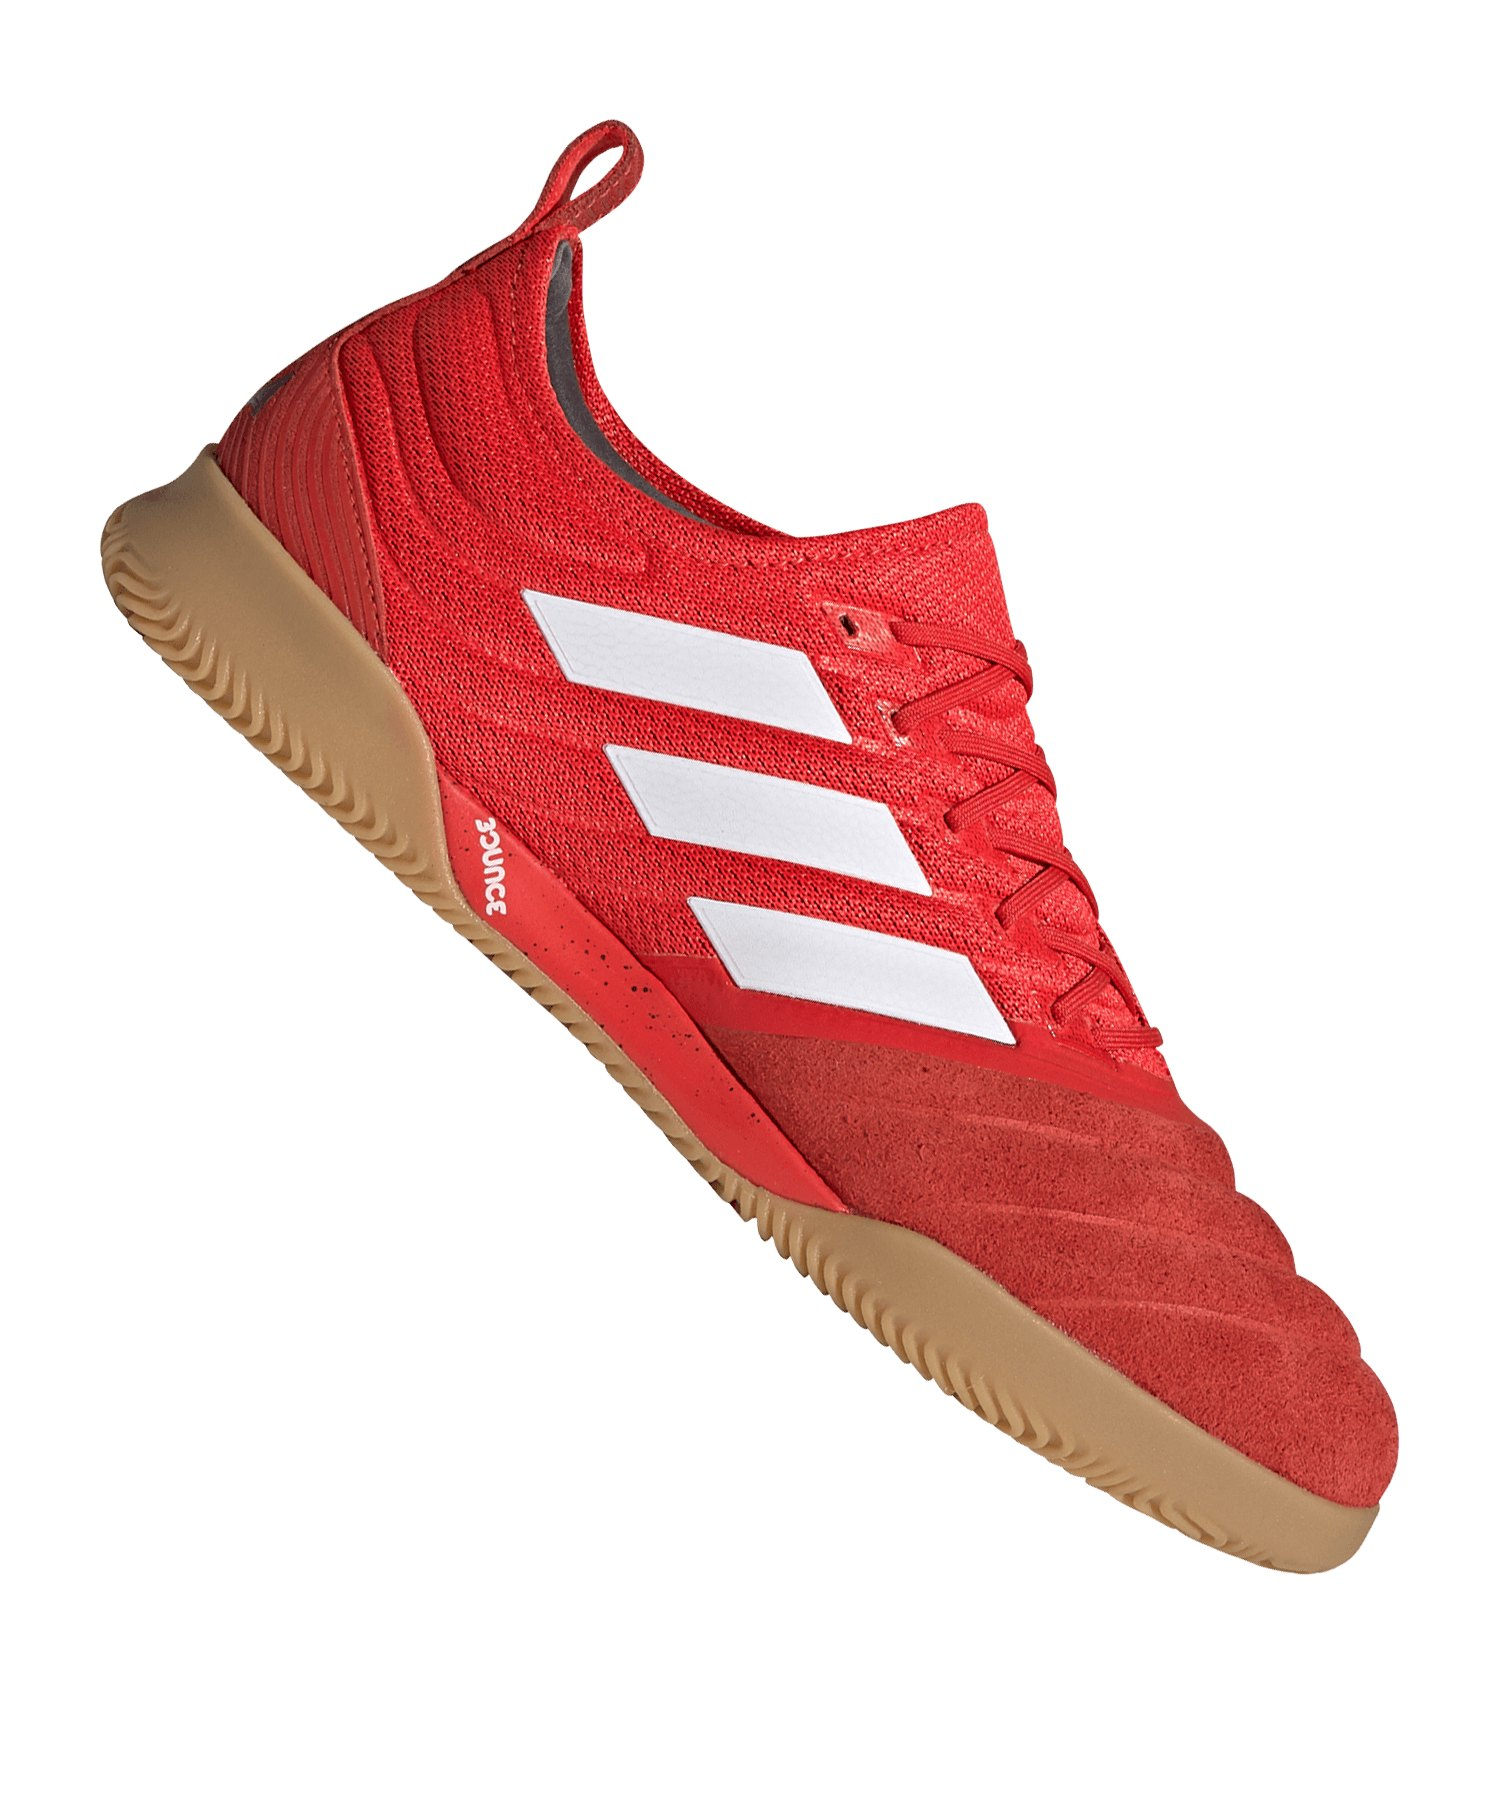 adidas COPA 20.1 IN Halle Rot Schwarz - rot